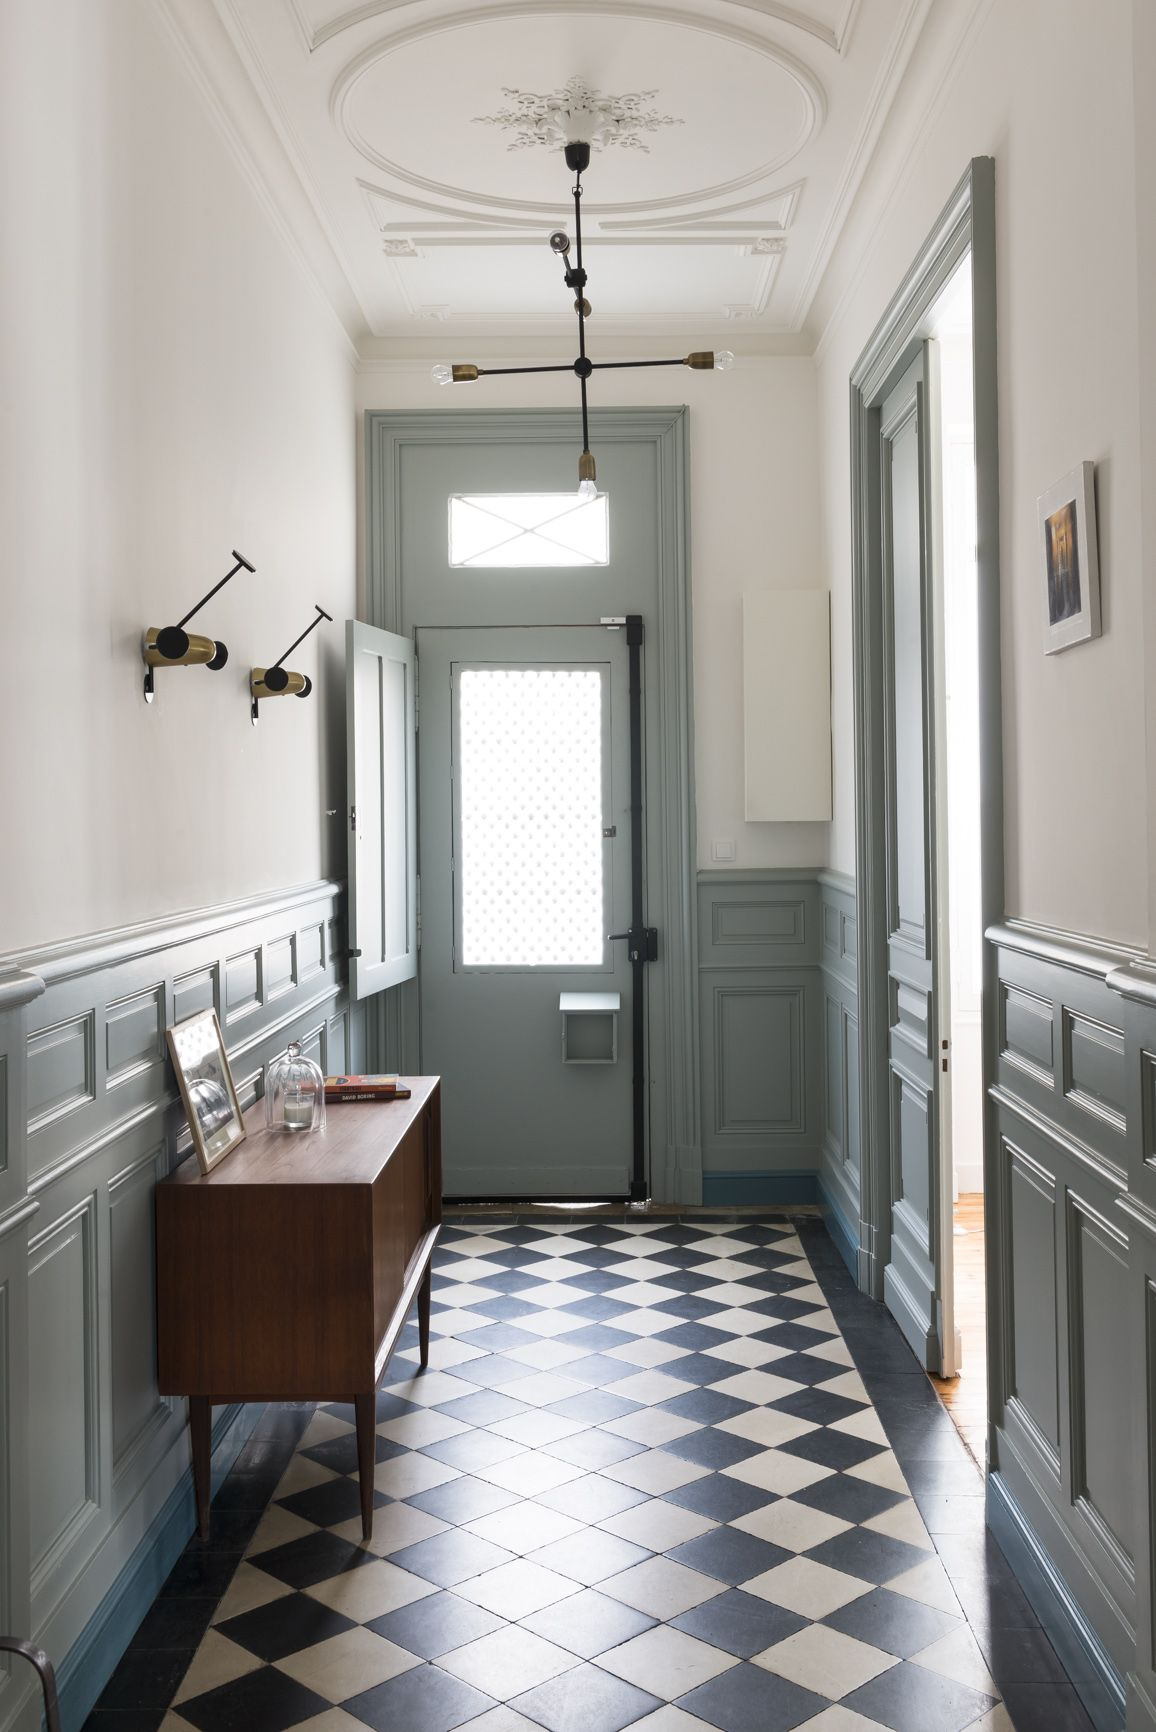 Best 25 maison bourgeoise ideas on pinterest boiseries for Habillage fenetre salle de bain